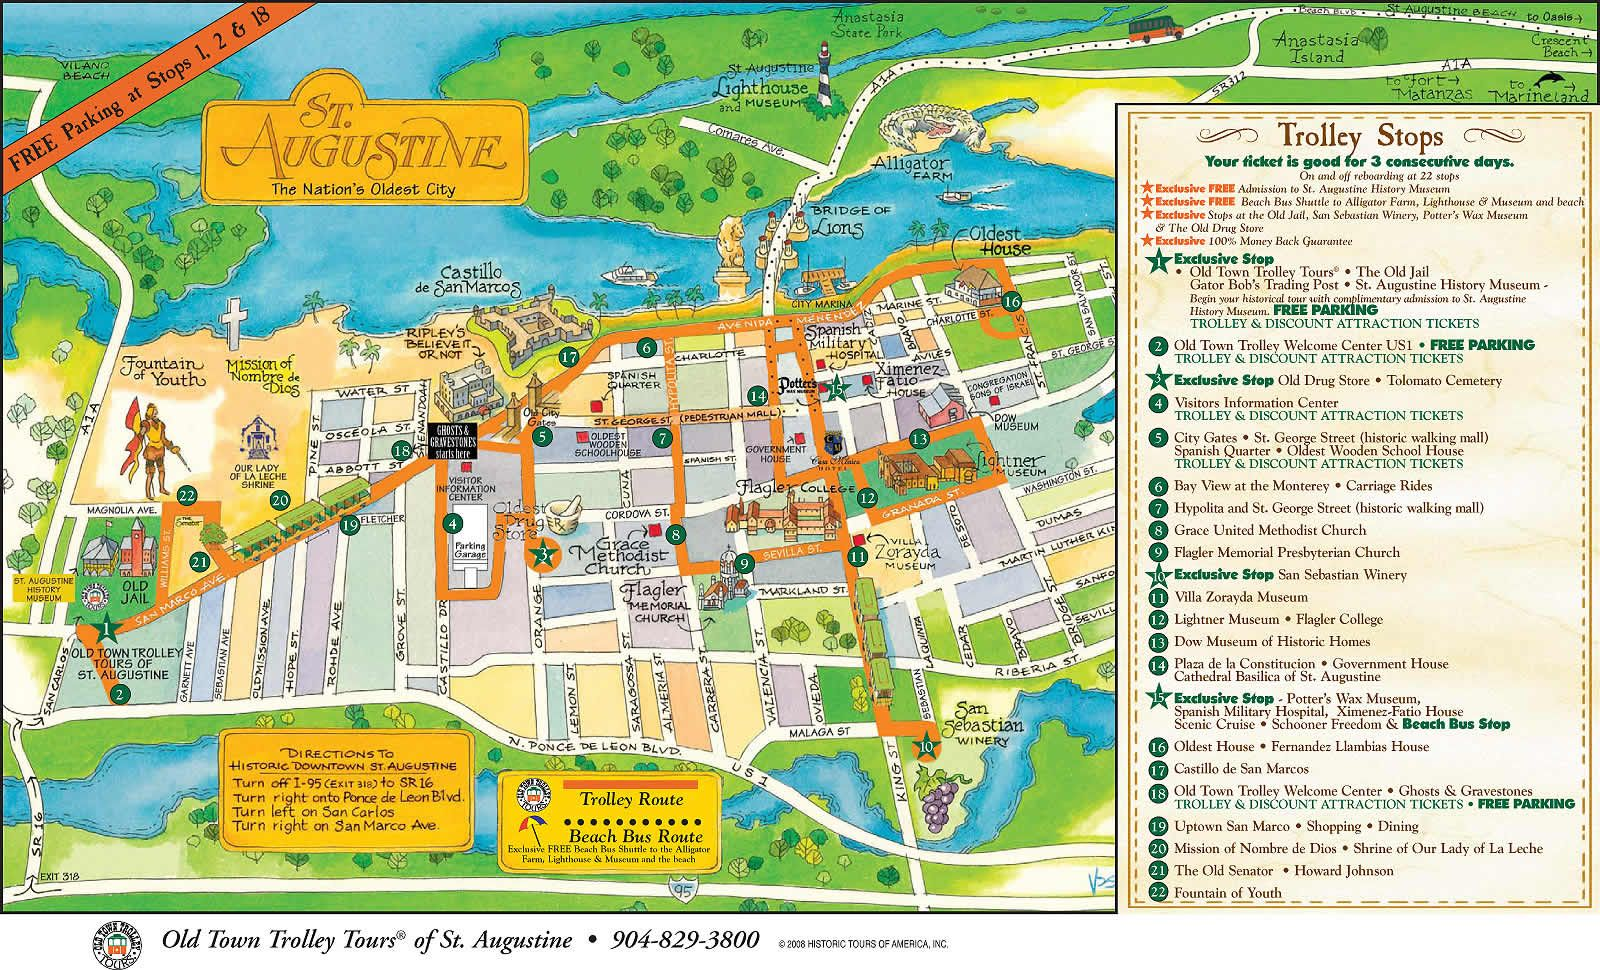 St Augustine Fl Click To View The Full Size Image Courtesy Of - Florida map cities and towns